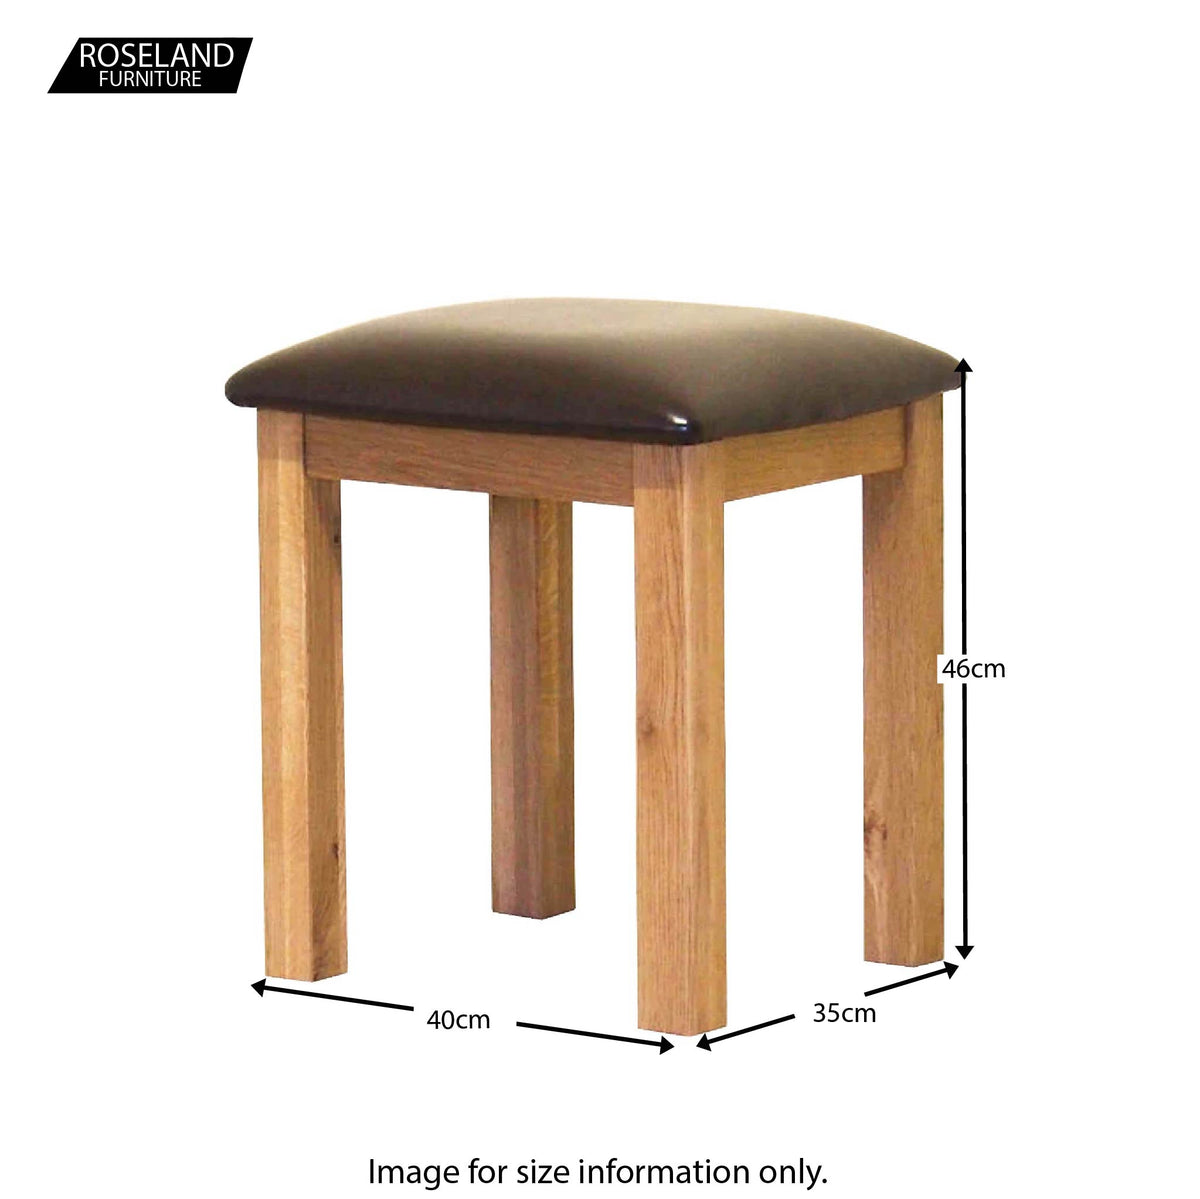 Roseland Oak Stool - Size Guide